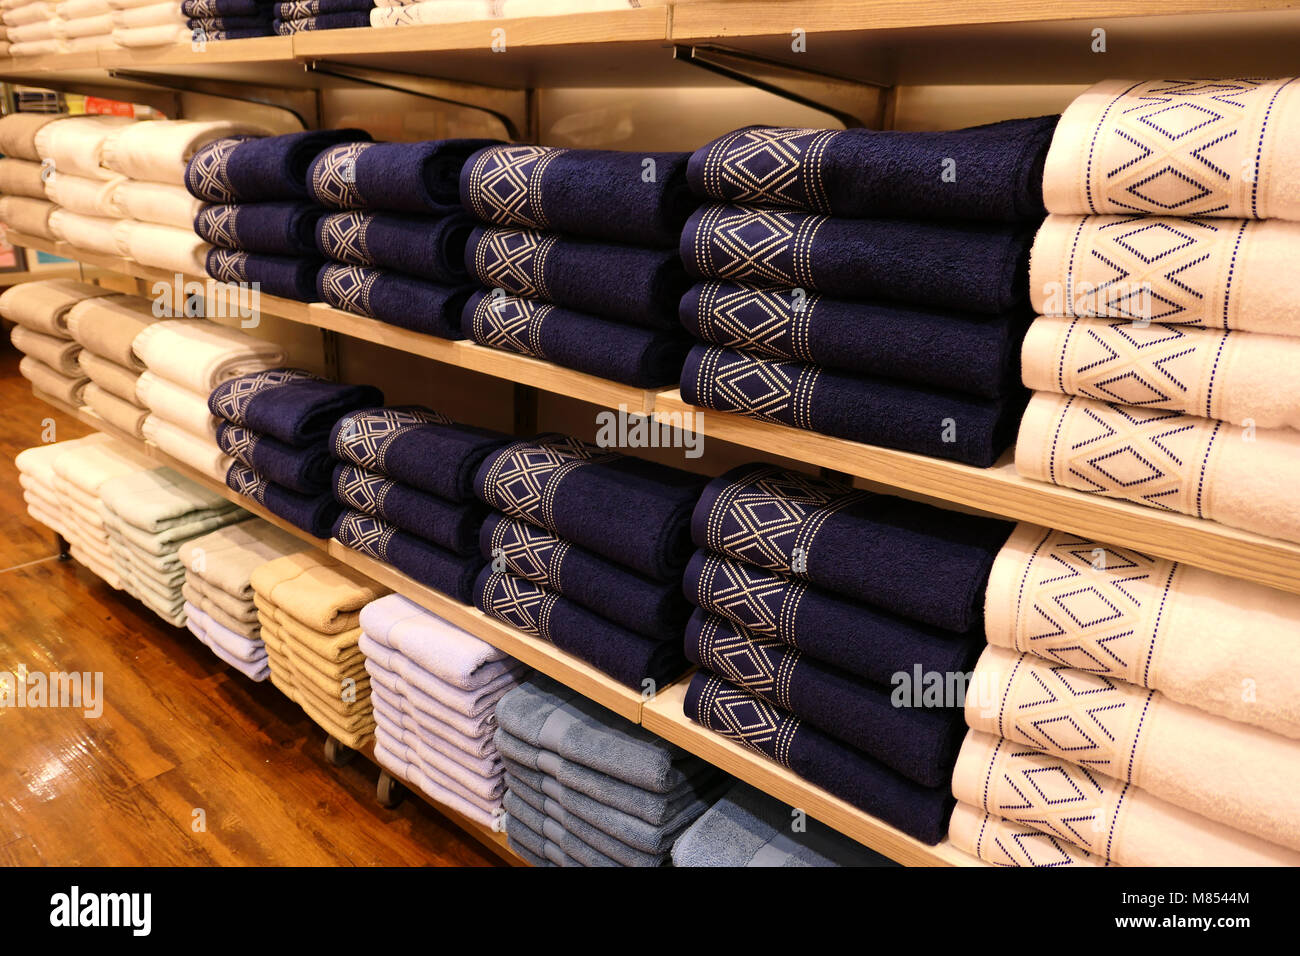 Piles of towels on the shelves Stock Photo: 177133956 - Alamy